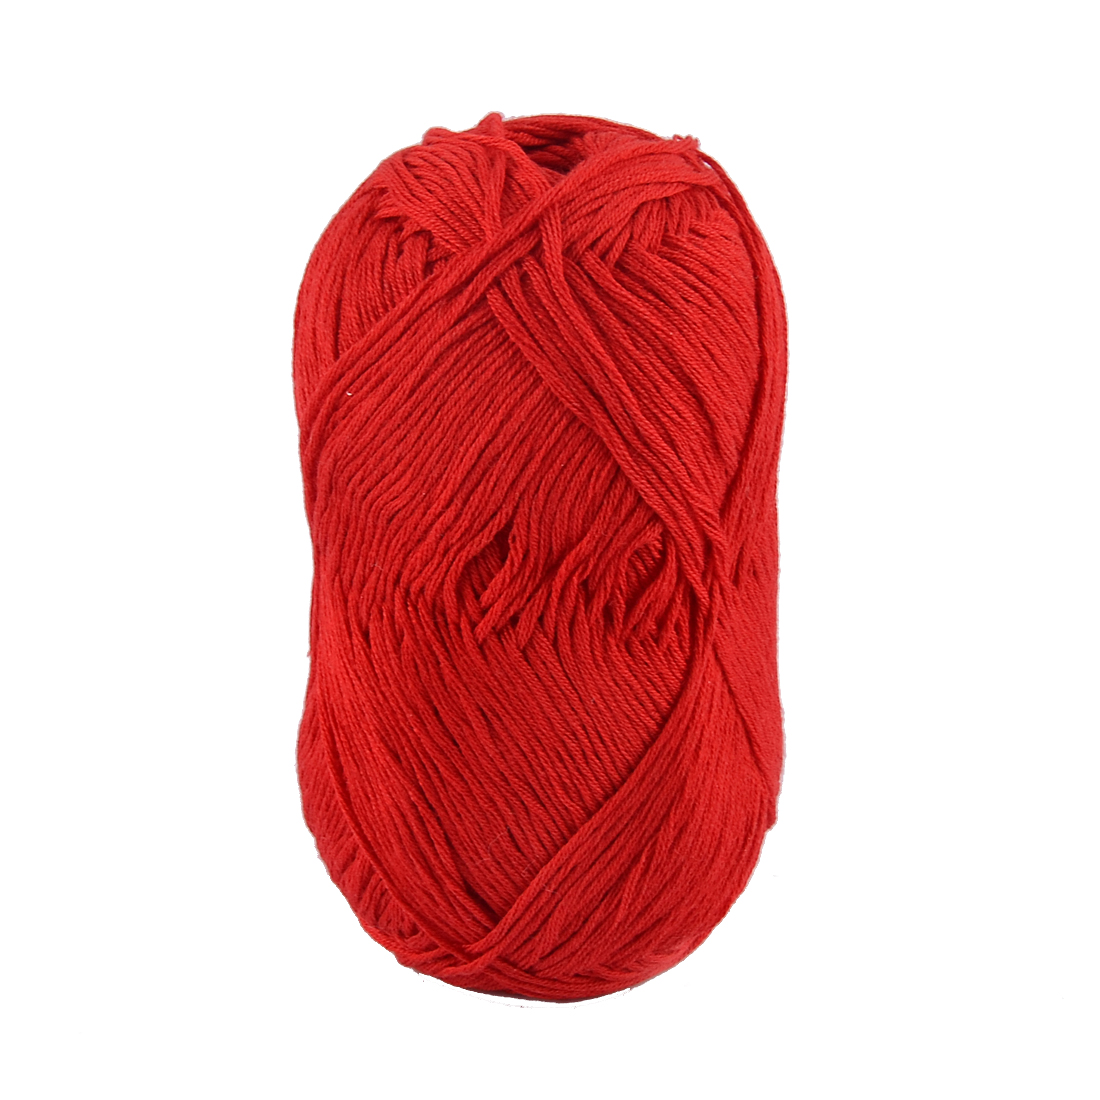 Cotton Hand Knitting Clothes Hat Sweater Crocheting Crochet Thread 50 Gram Red